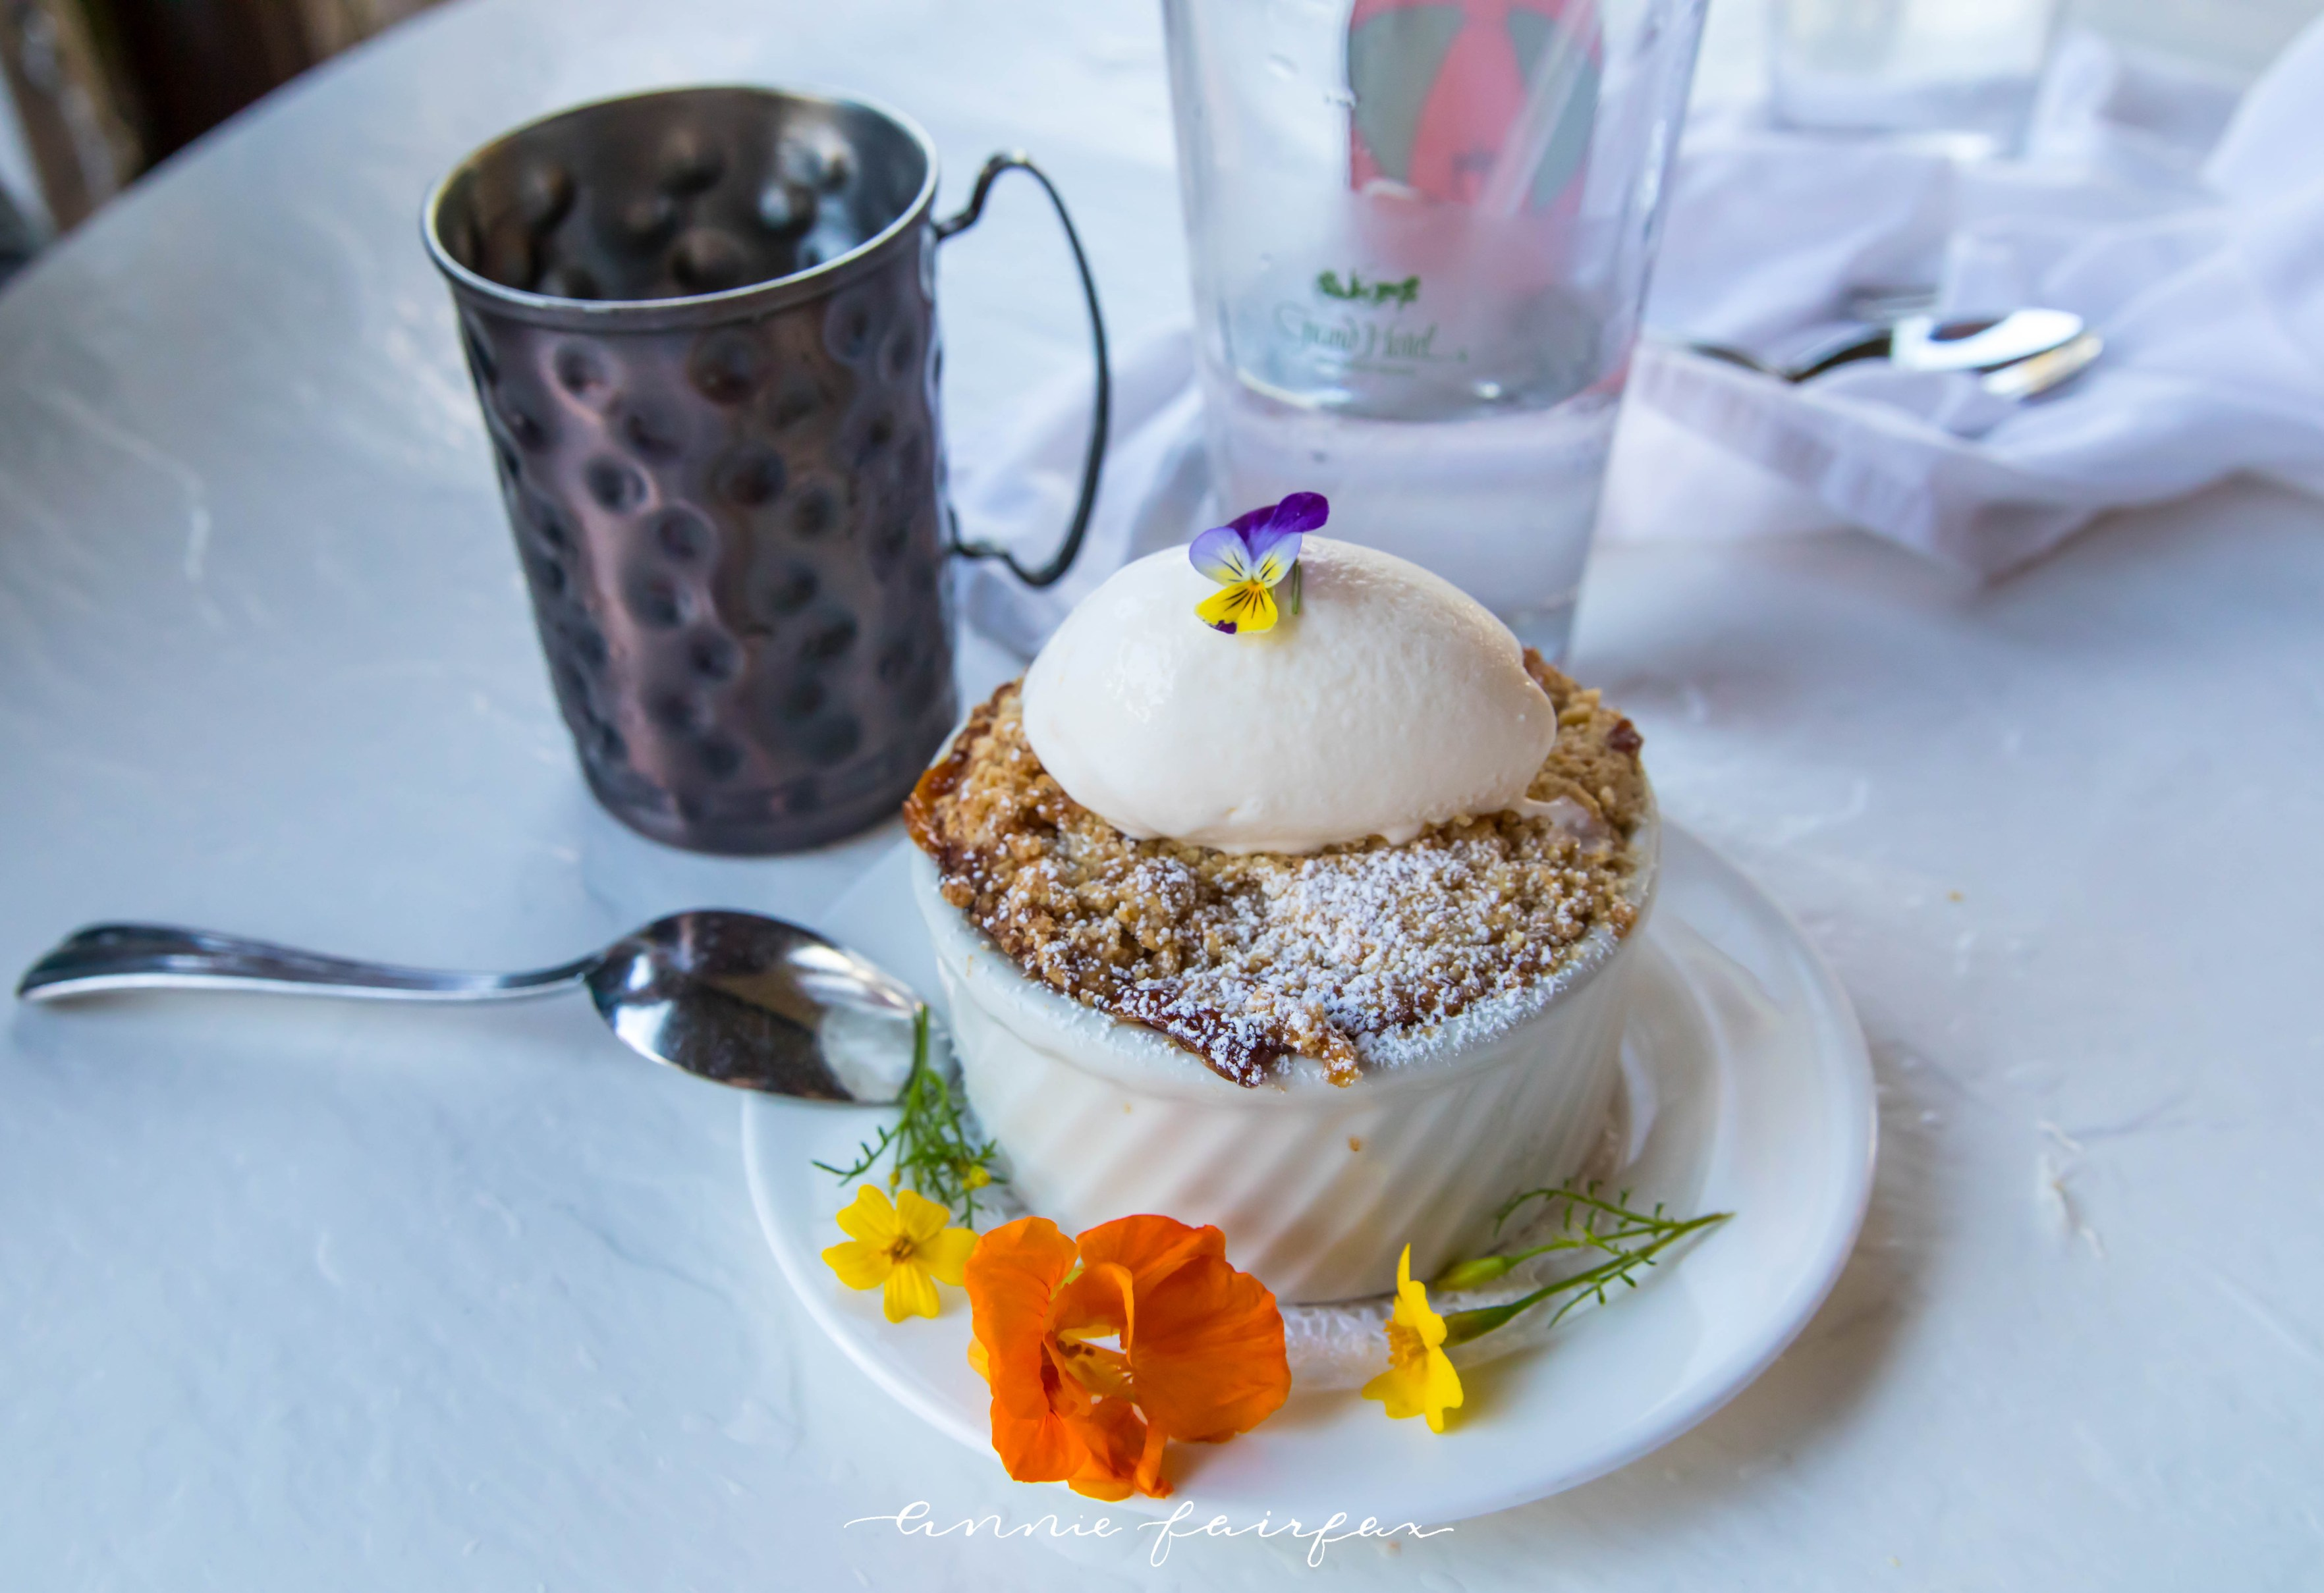 Peach Cobbler Jockey Club Restaurant Grand Hotel Mackinac Island Grand Hotel Dining 5 Course Dinner Mackinac Island